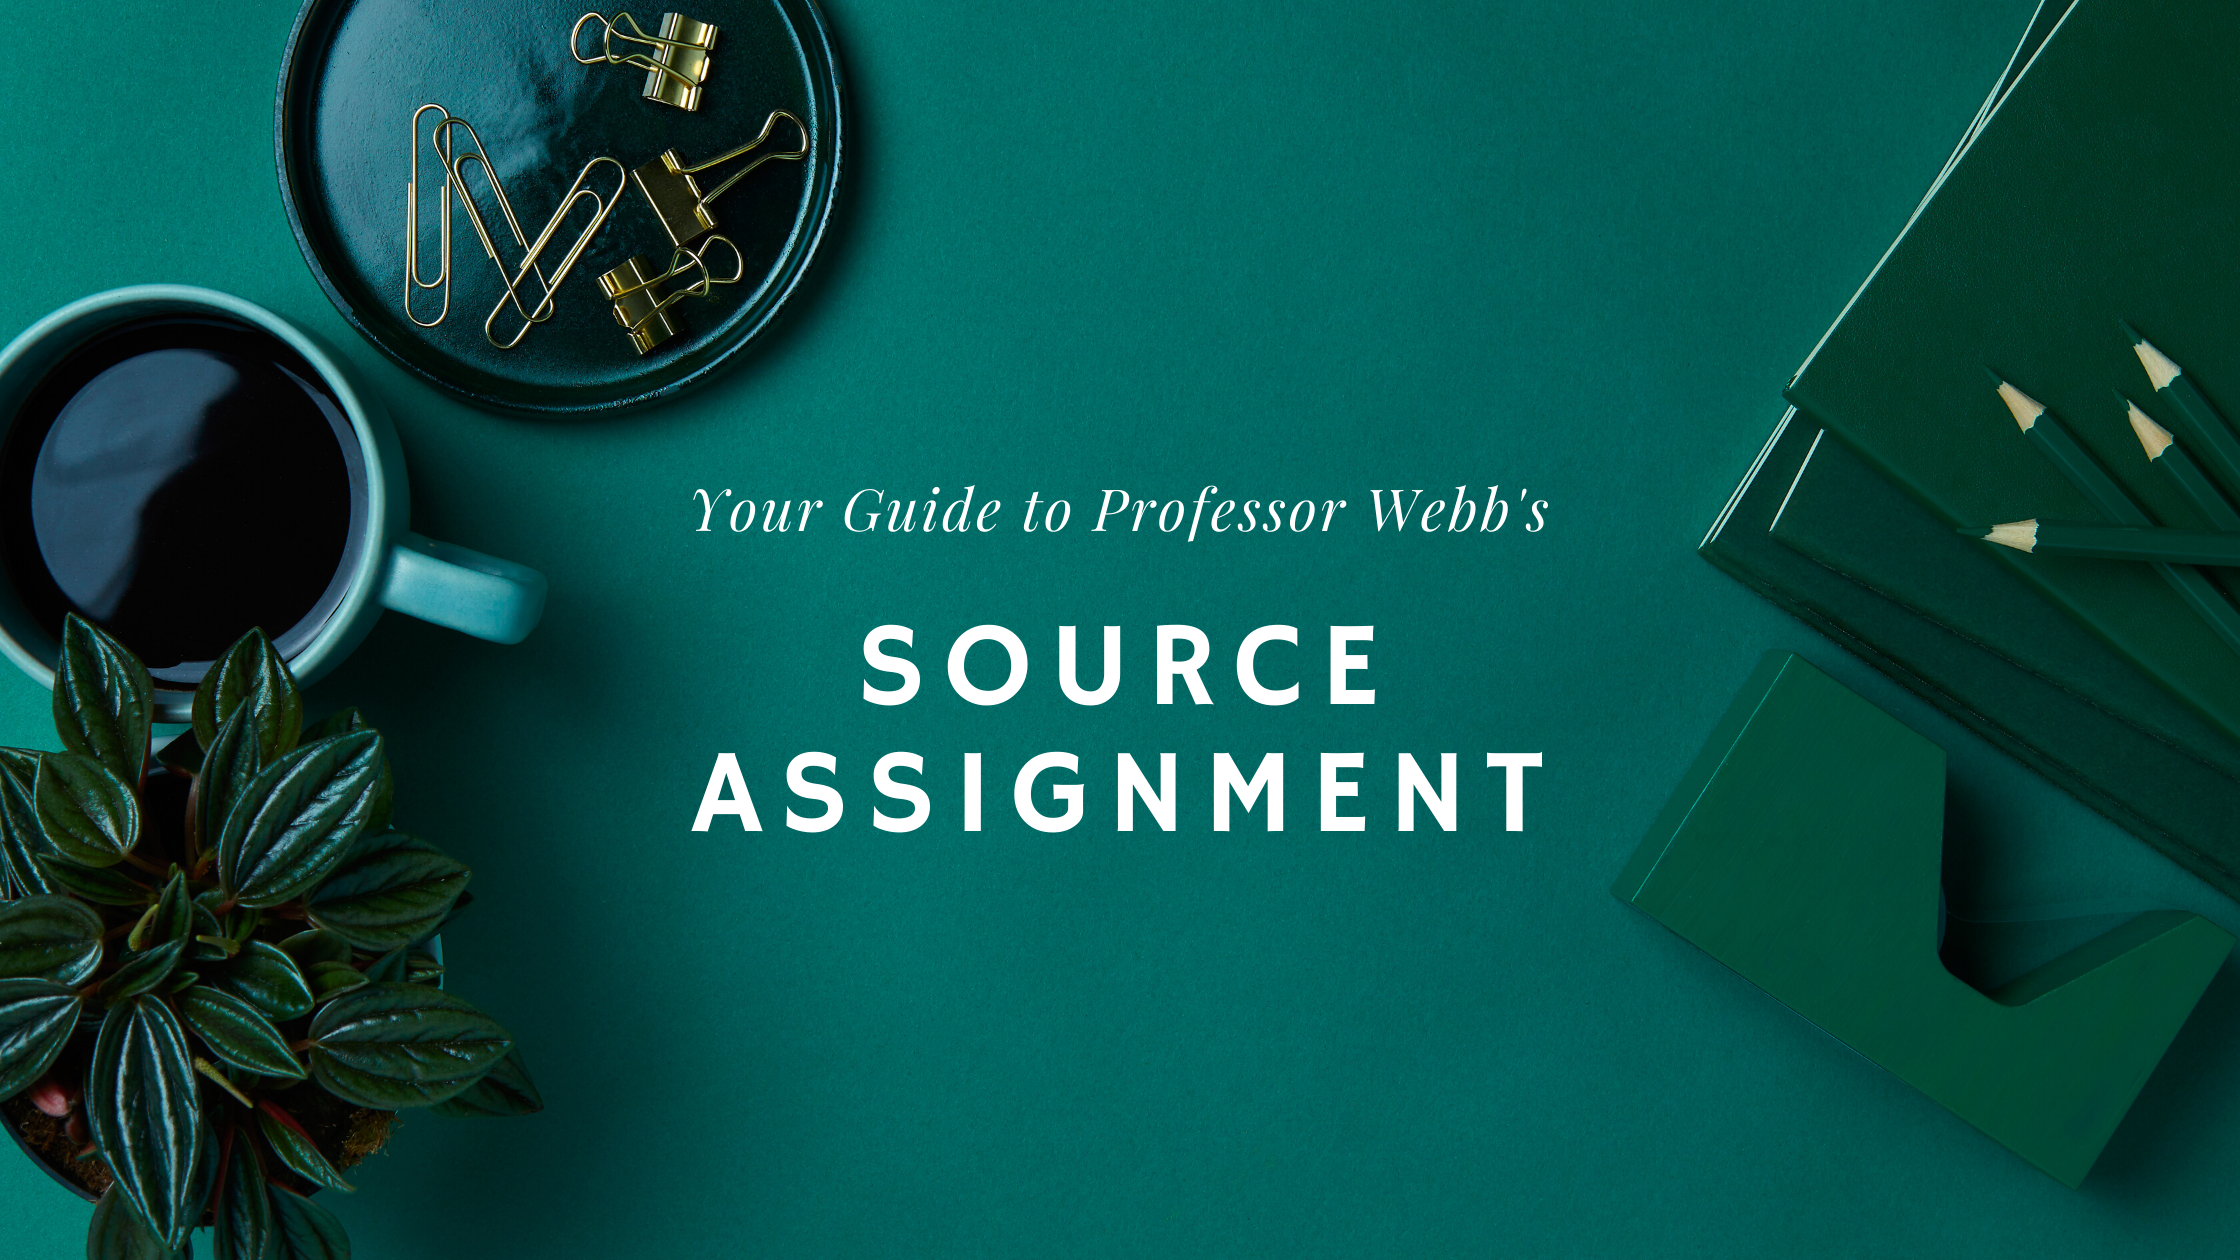 your guide to professor webb's source assignment